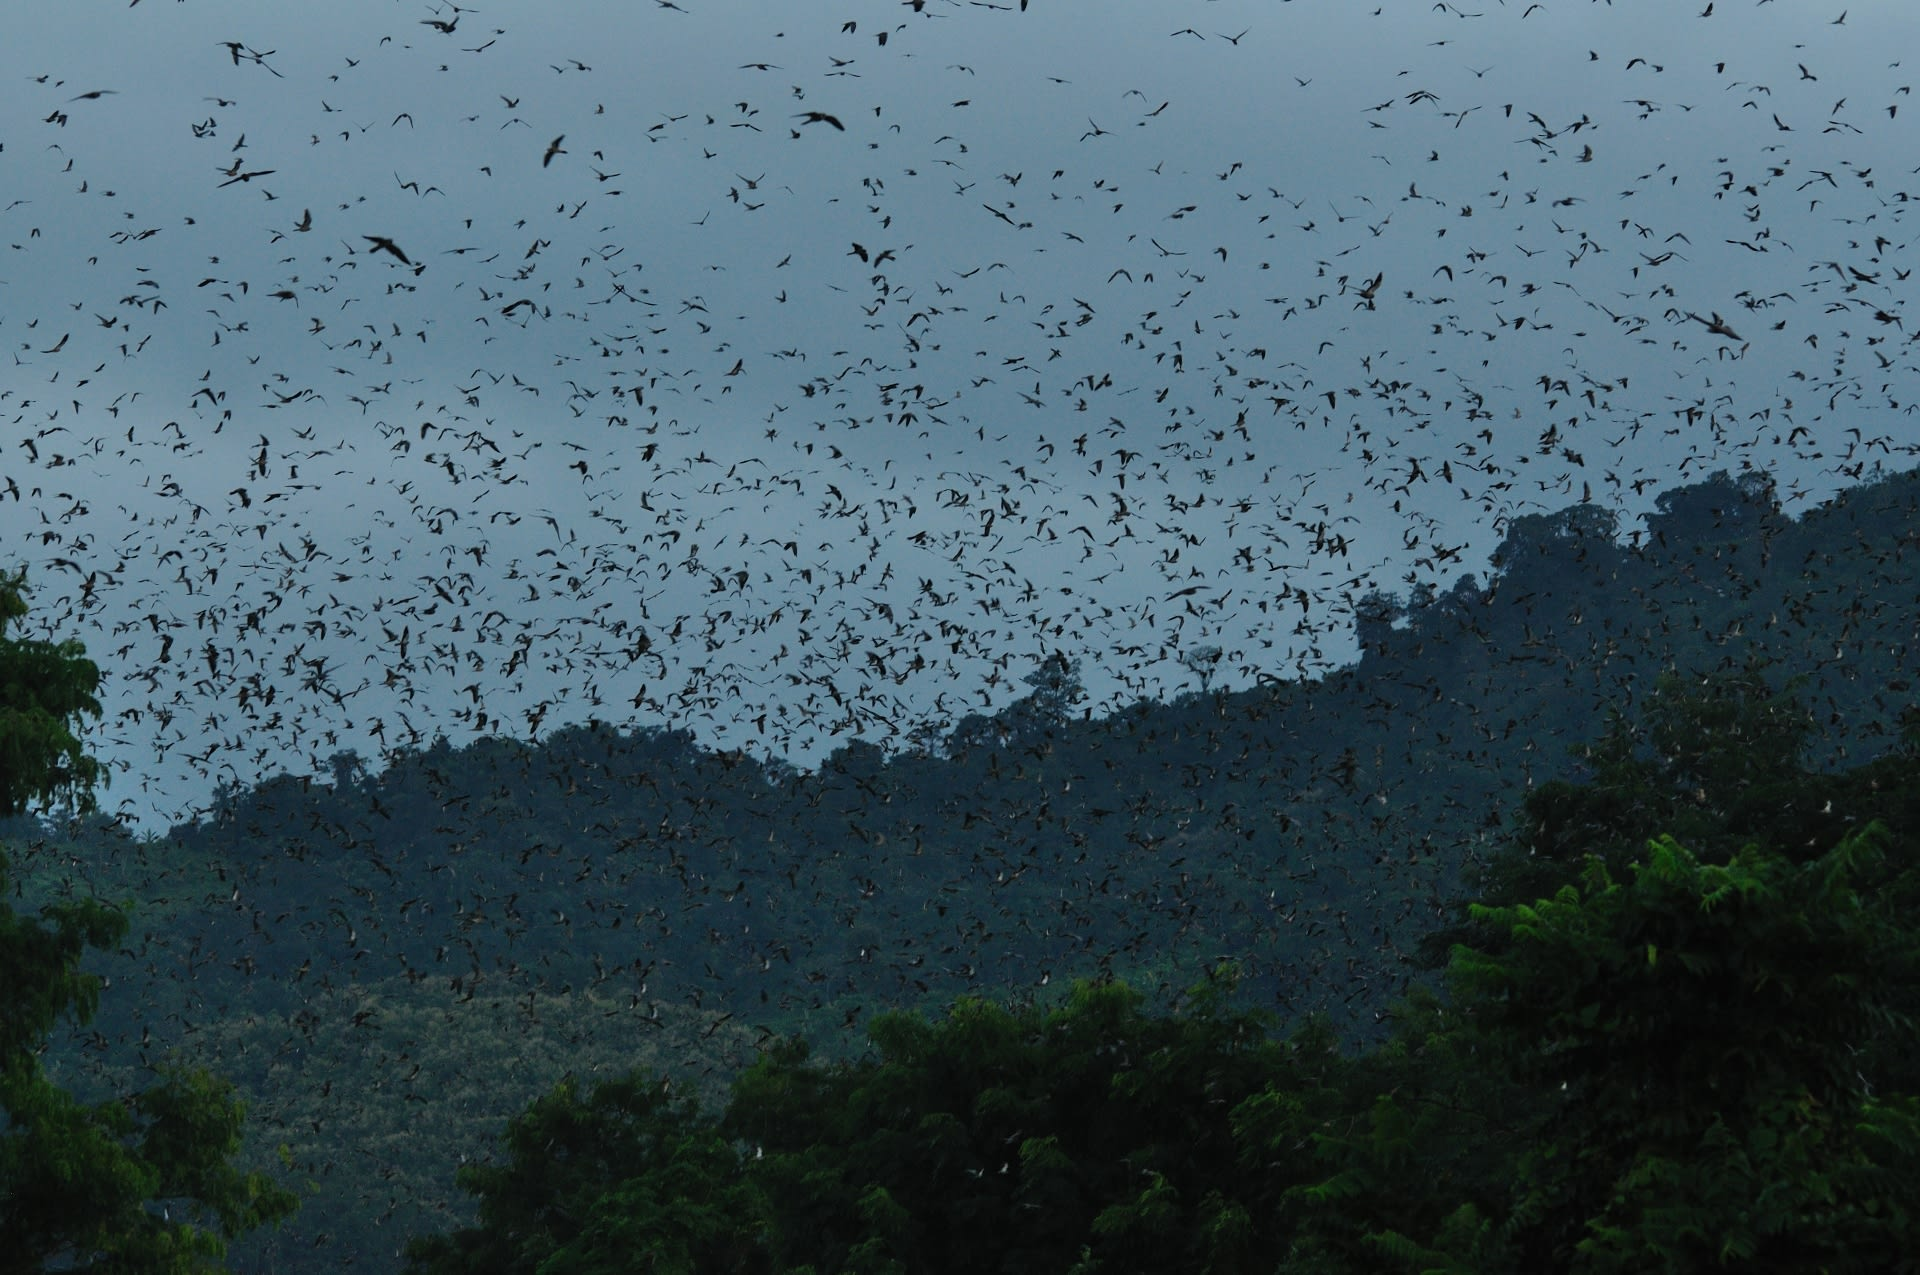 Raptors returning to their roosting sites at dusk seeking safety in numbers. 